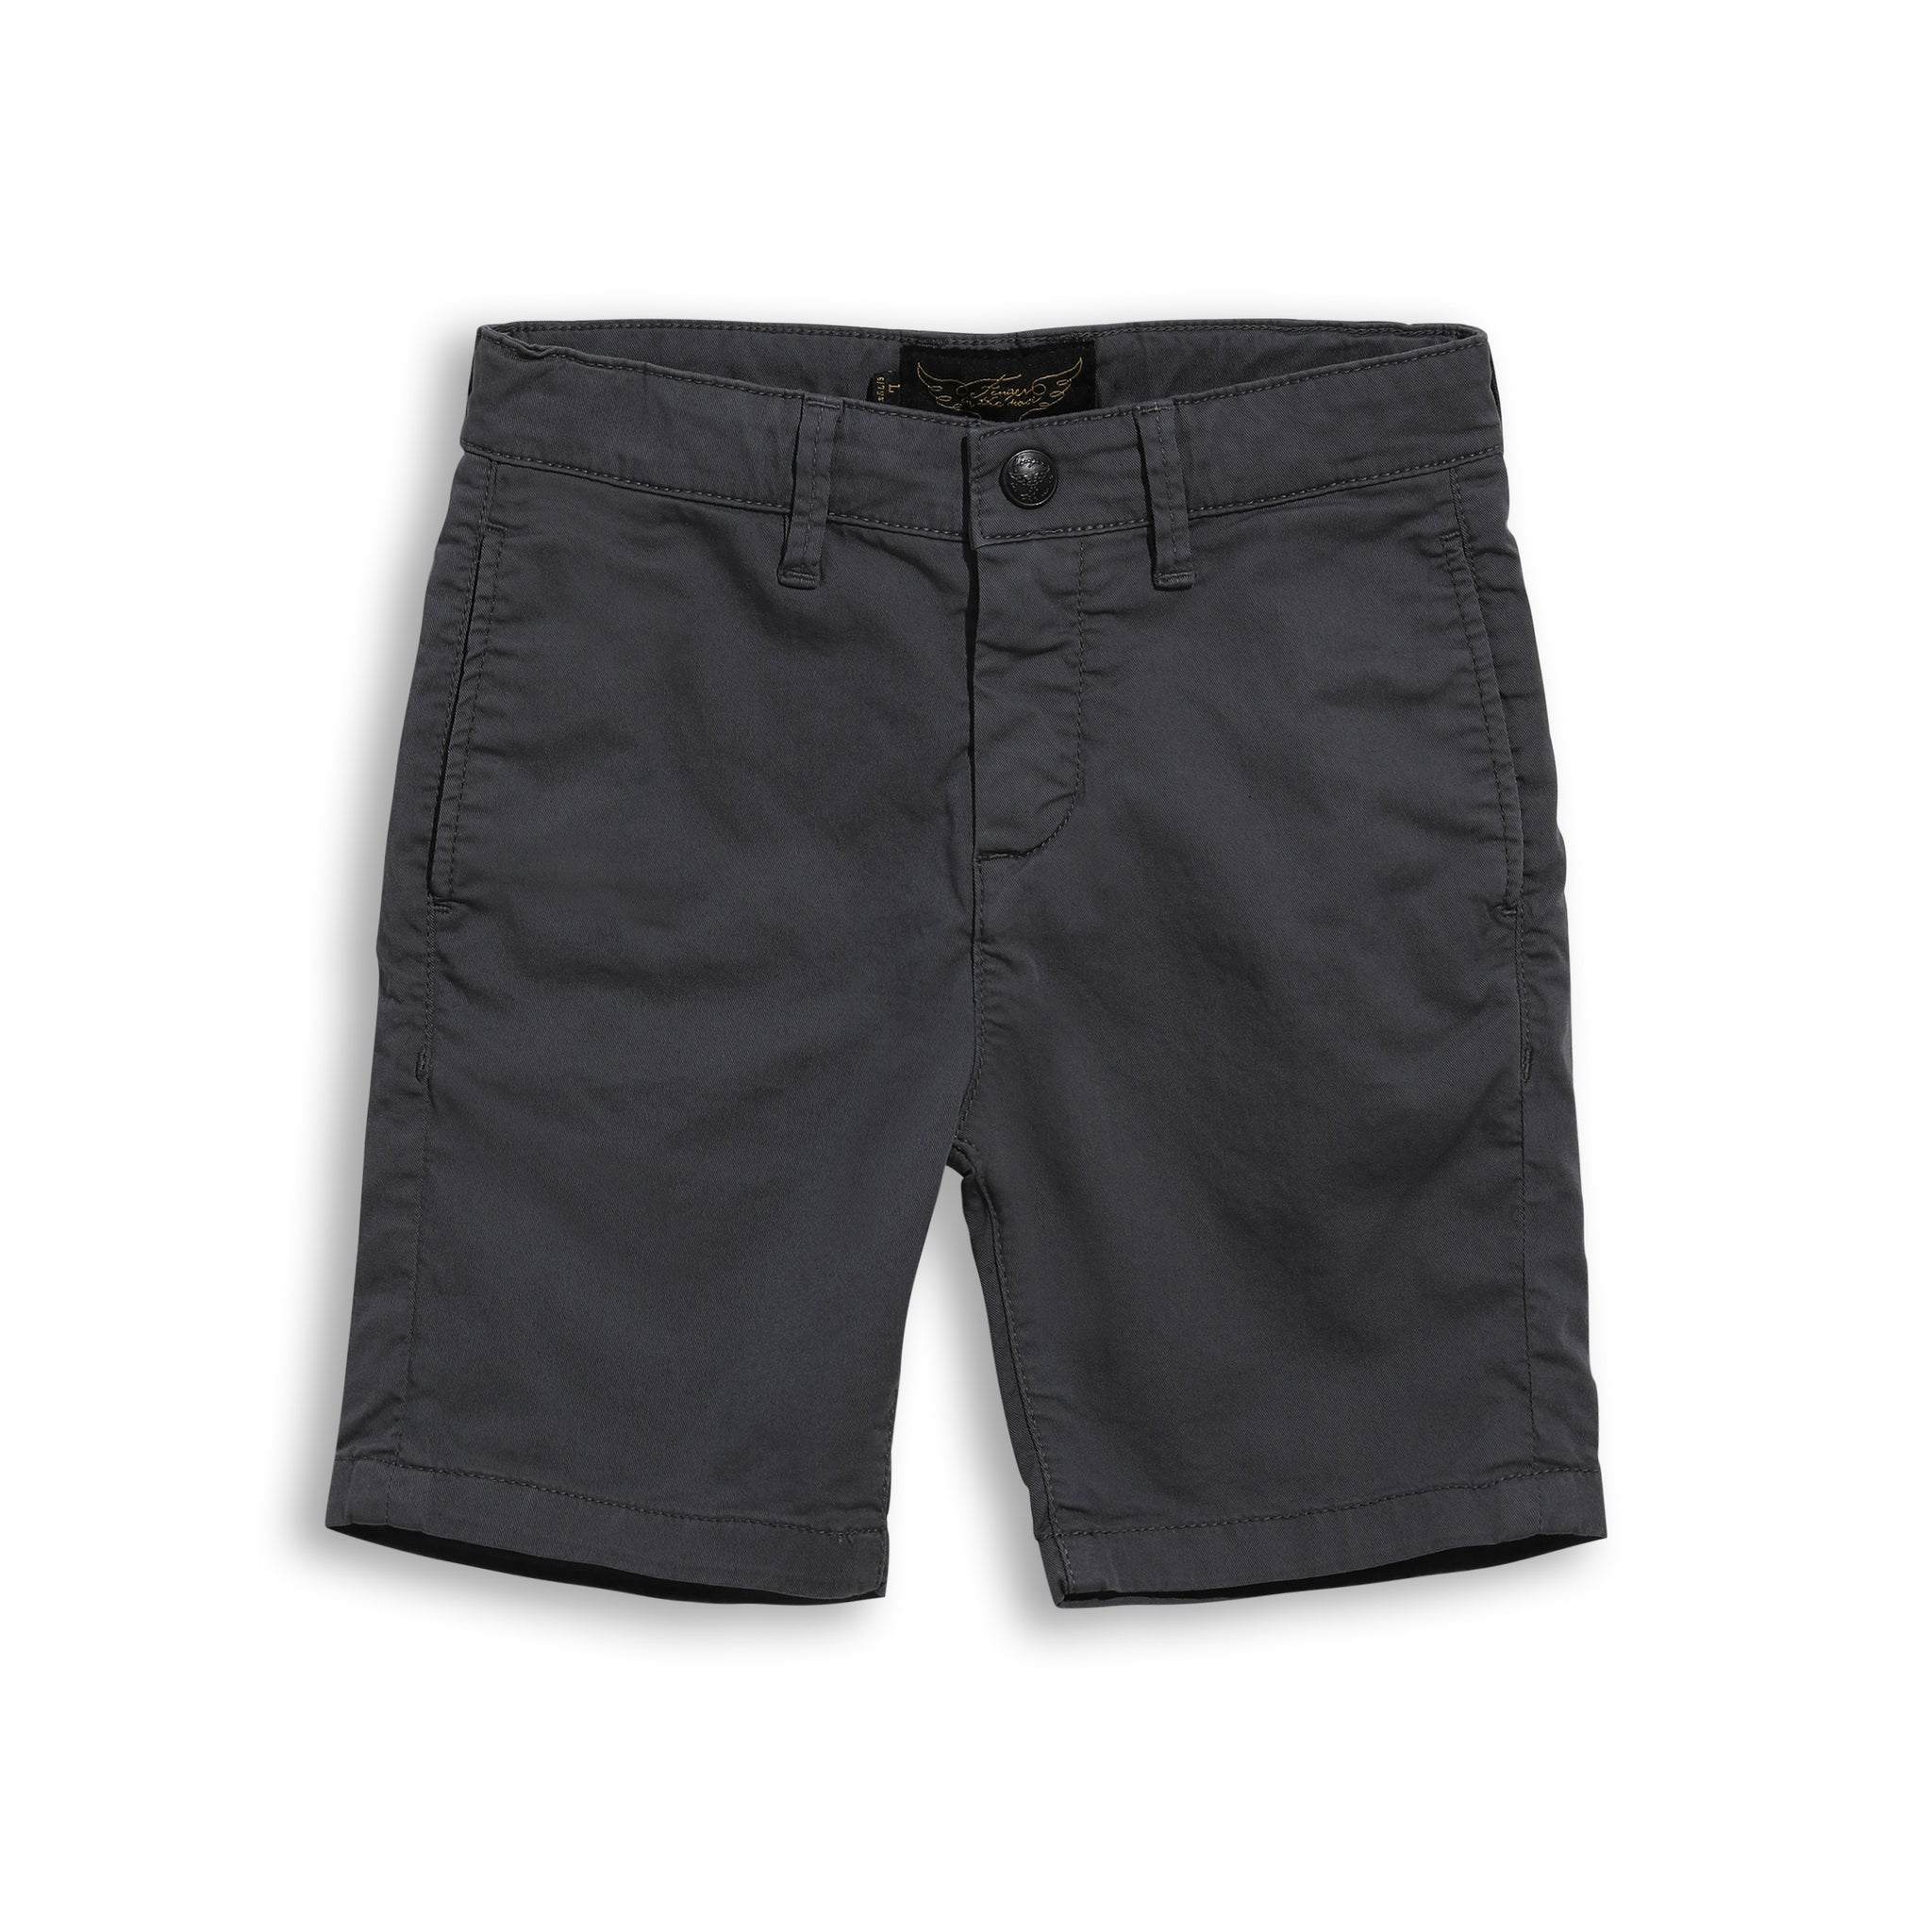 ALLEN Mid Grey - Chino Fit Bermuda 1